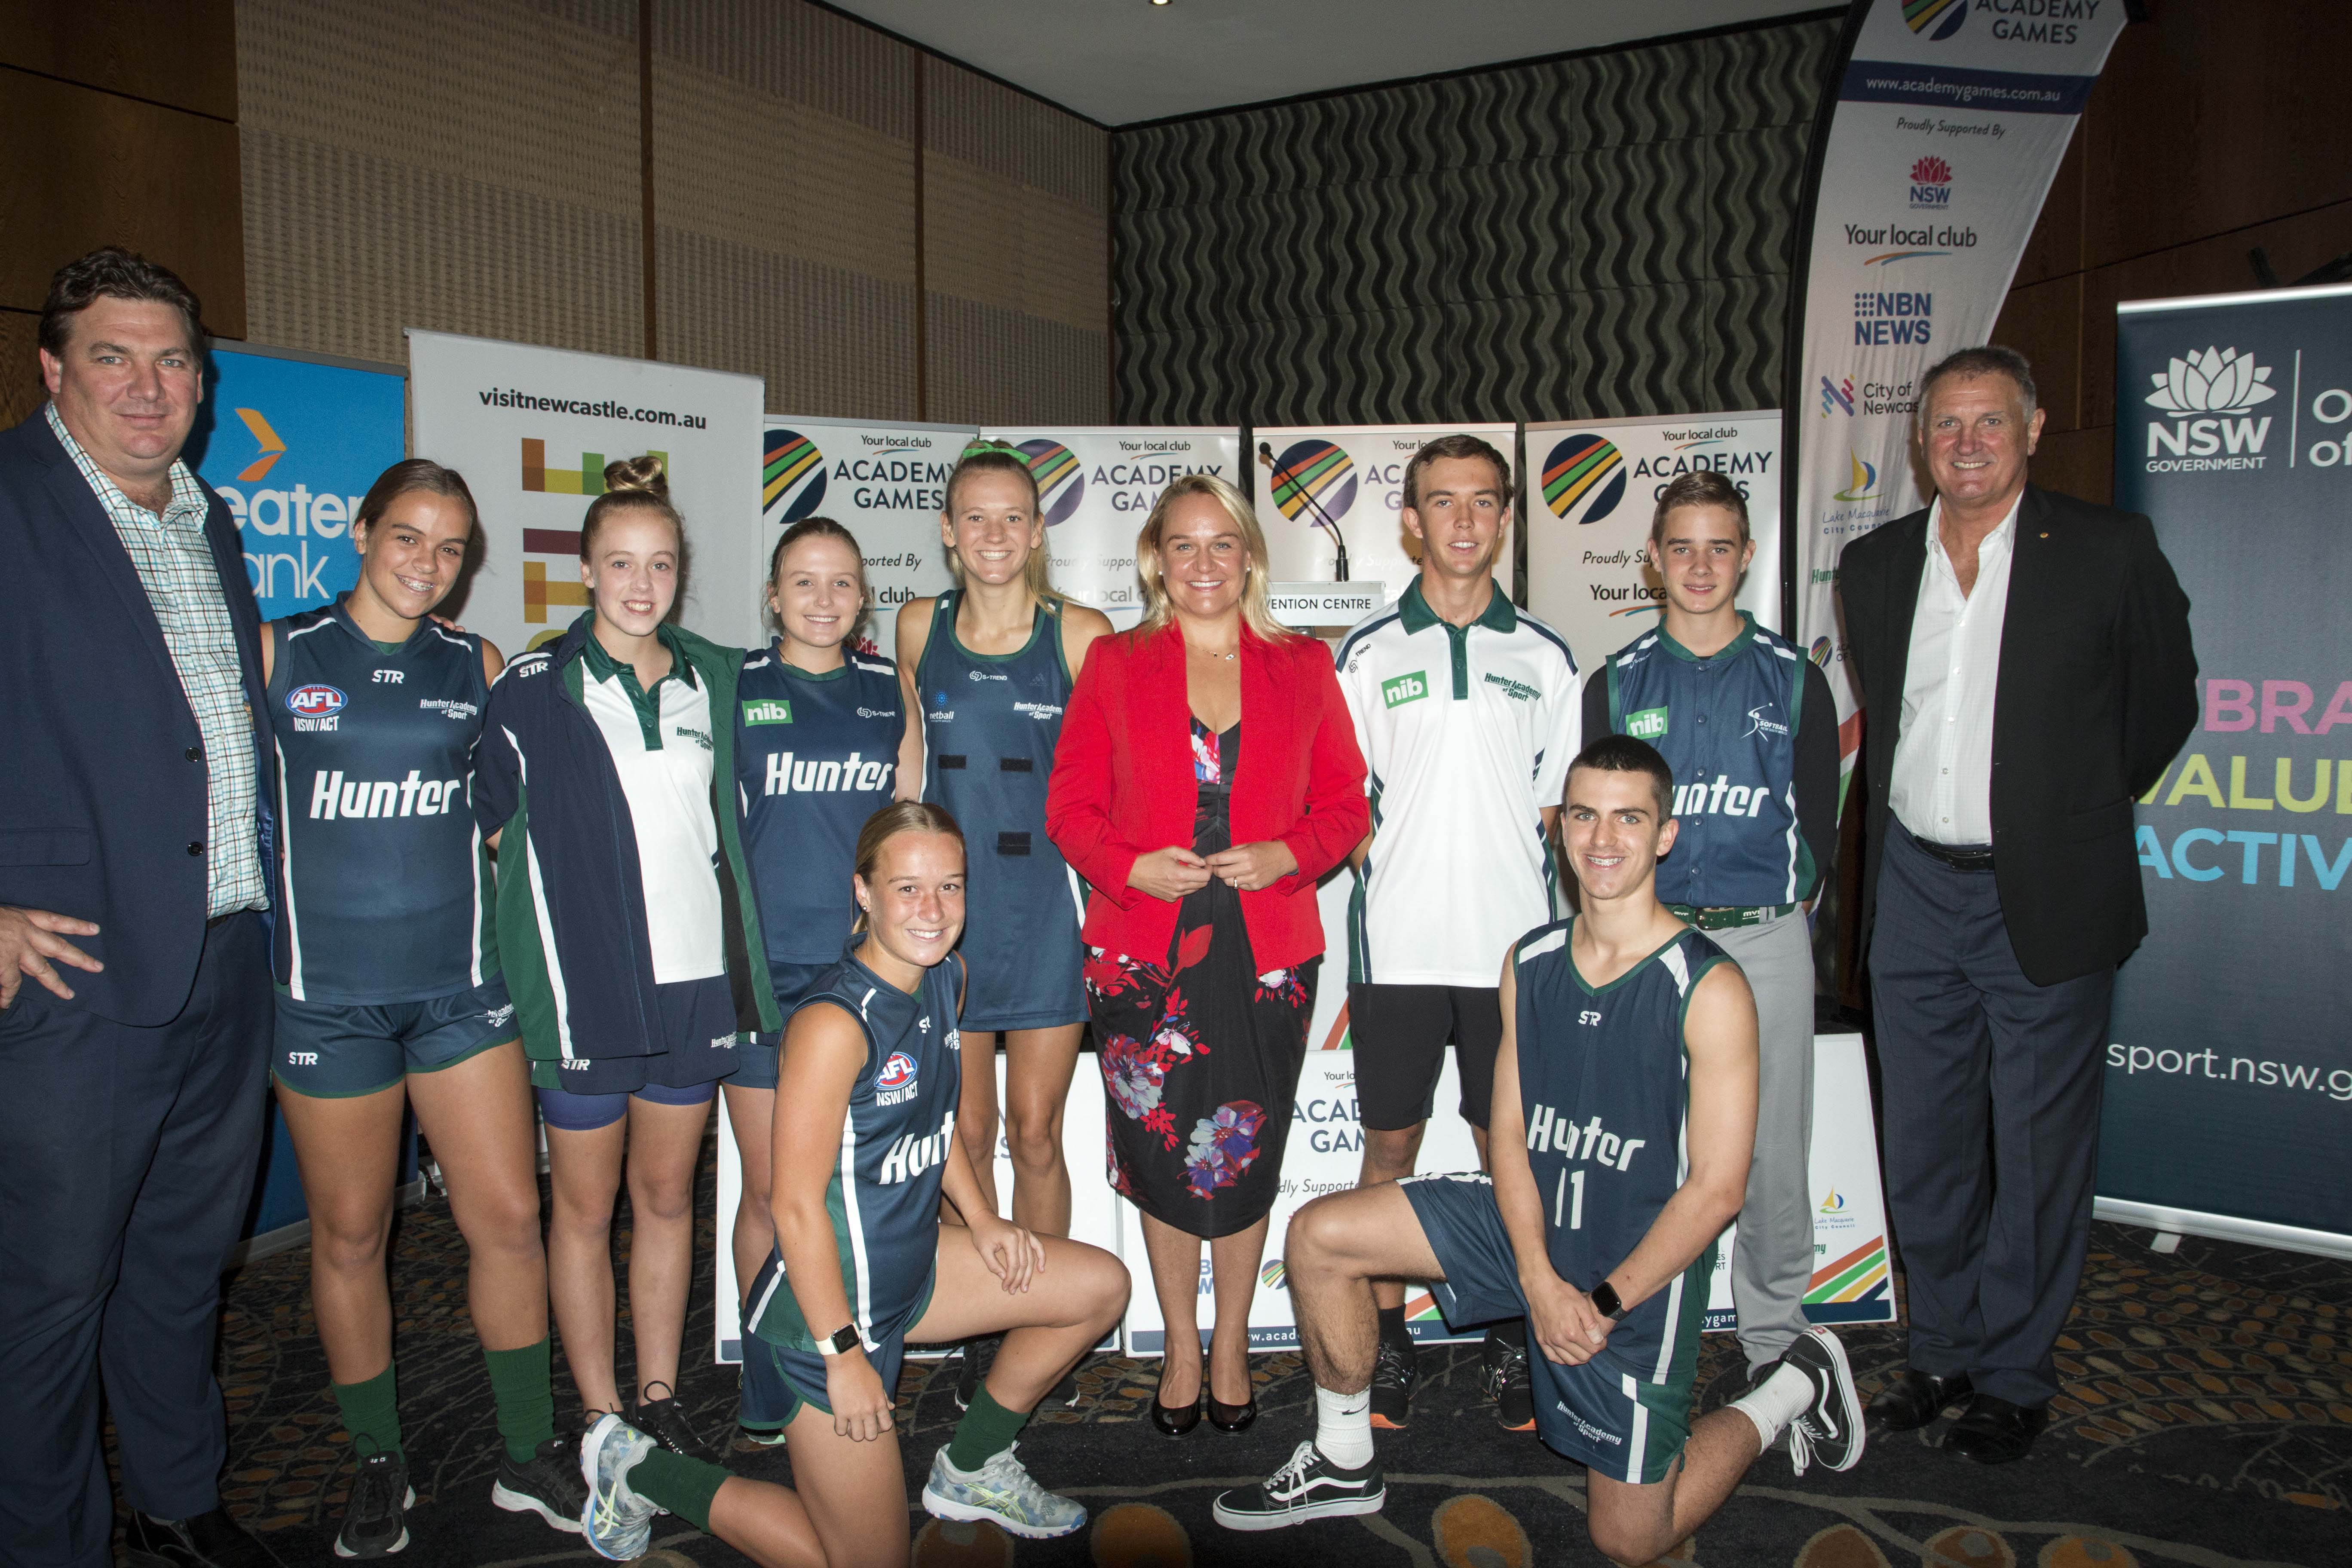 The 2019 Your Local Club Academy Games has officially kick started its campaign with a Media Launch held on Tuesday April 2nd at Wests New Lambton Terrace Room.